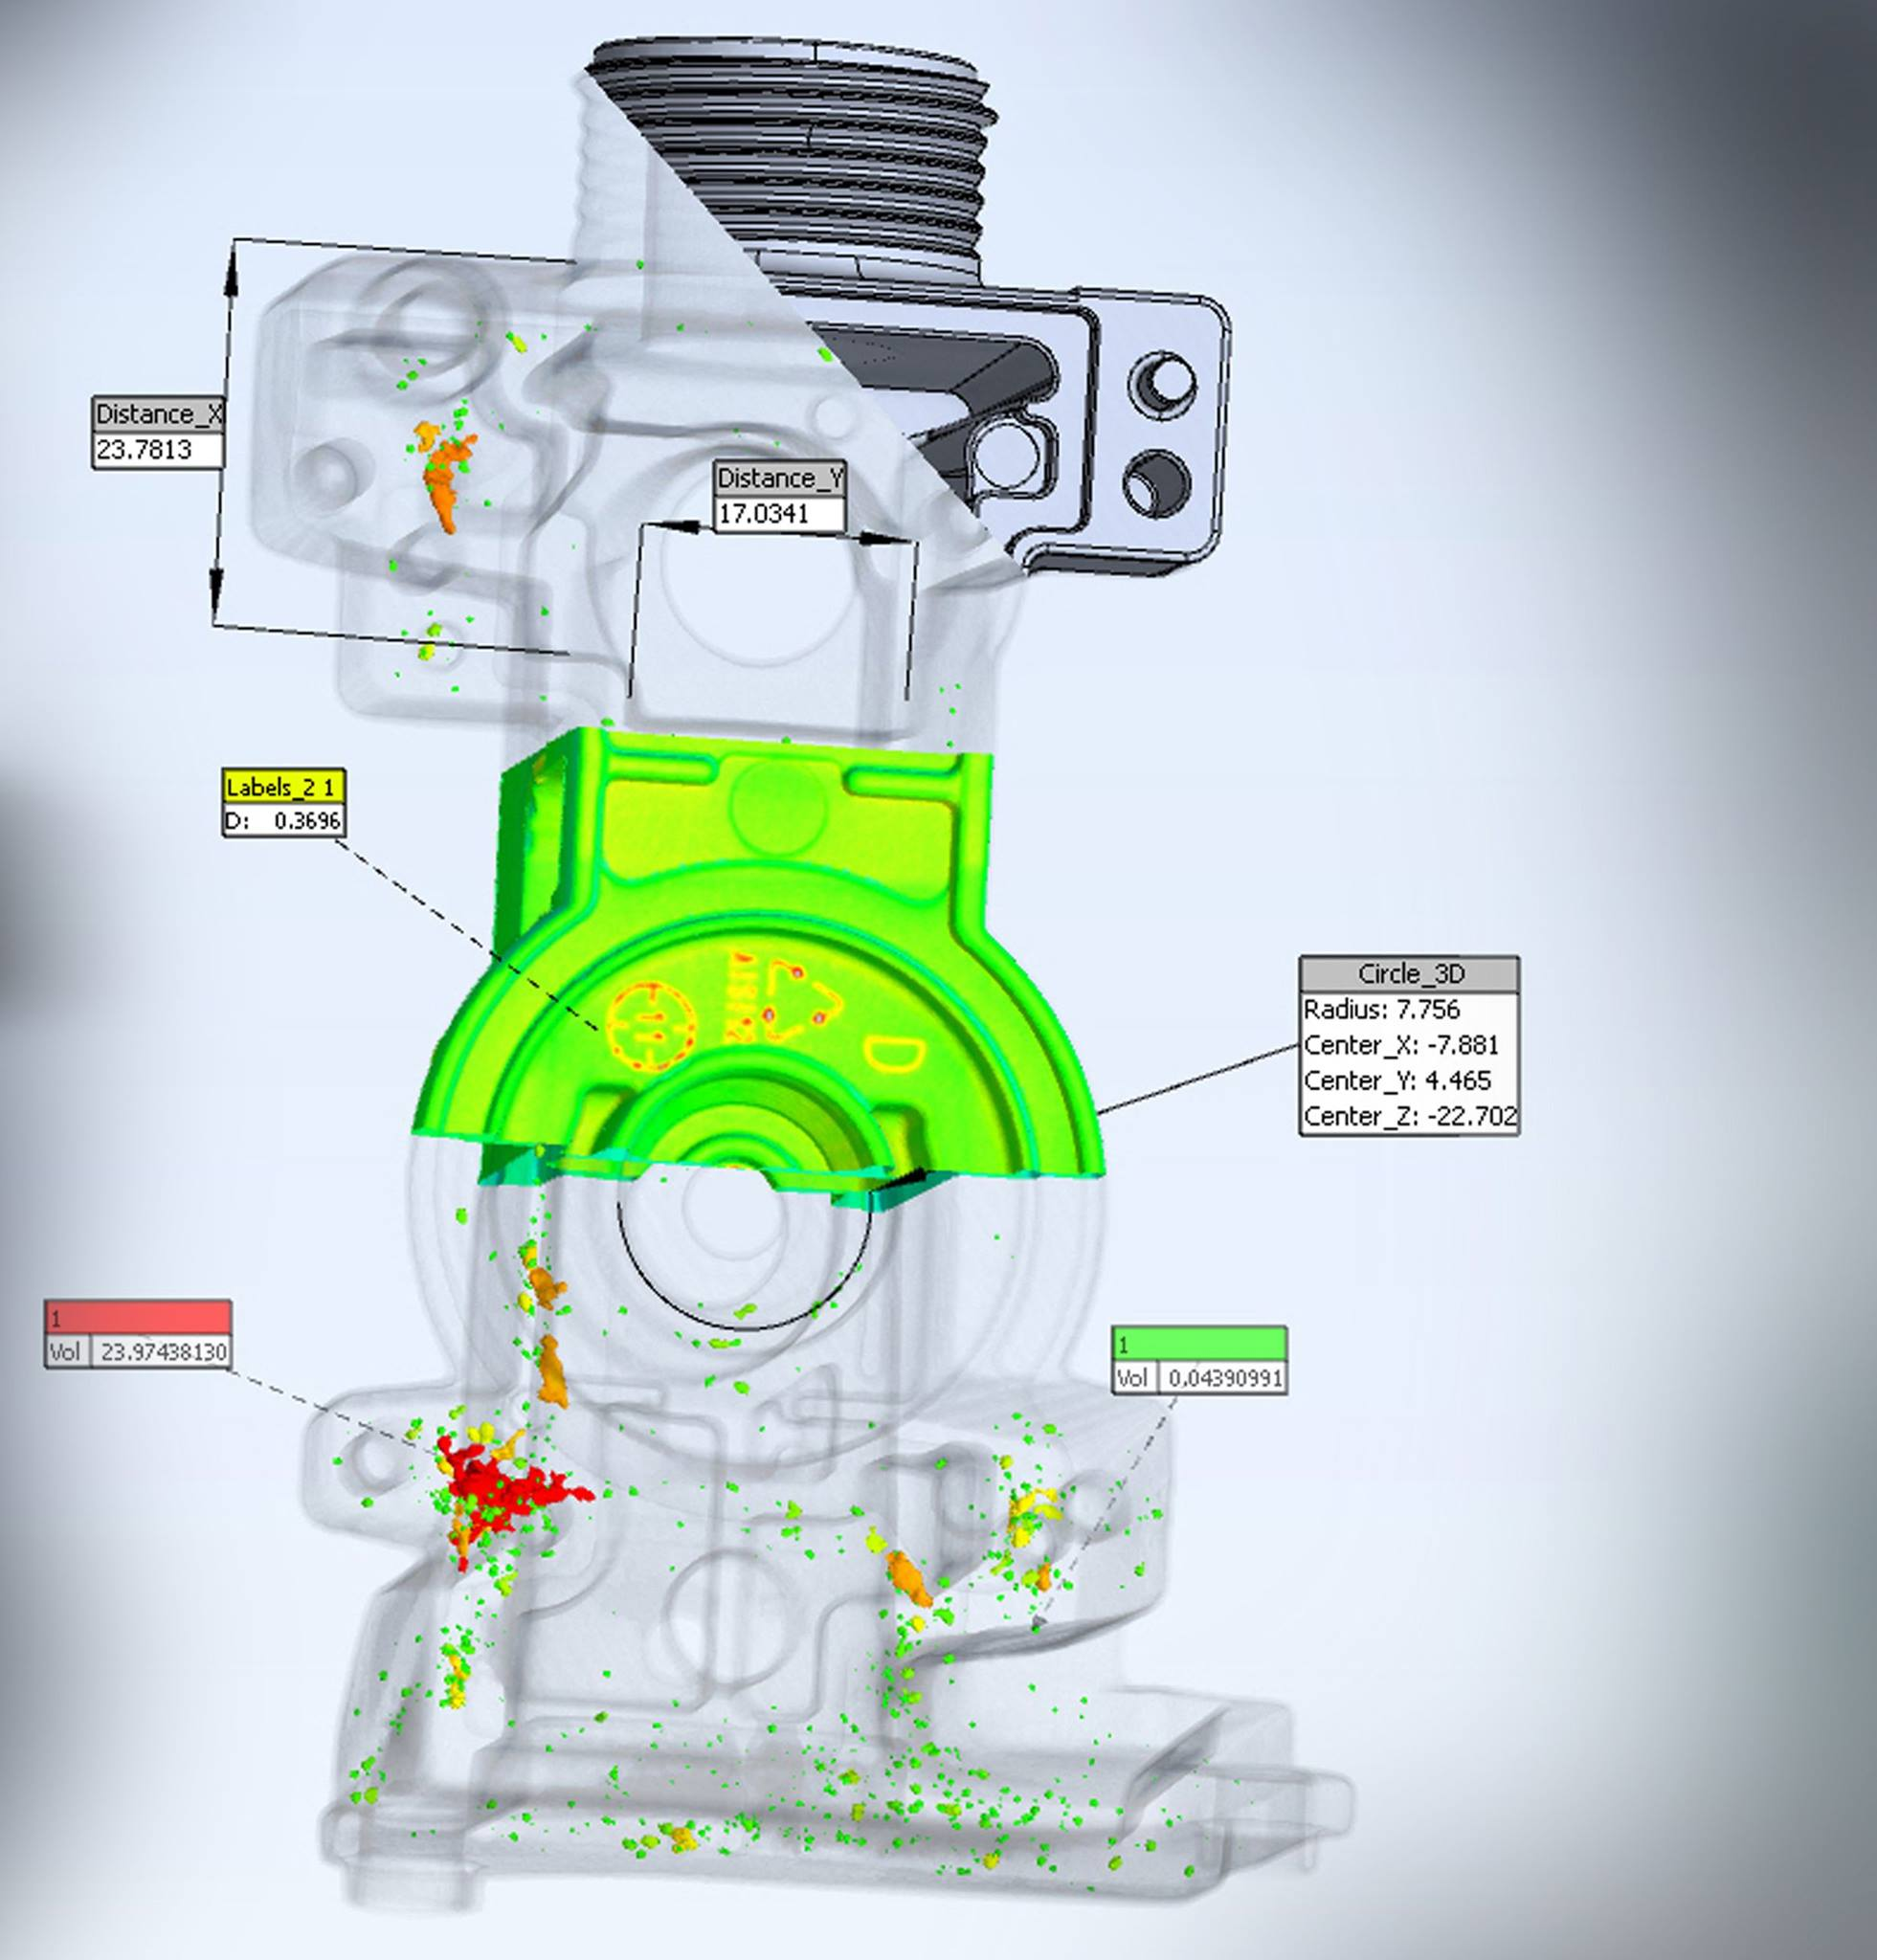 Sauter_Engineering+Design_Industrielle_Messtechnik-3D- Computertomographie(CT)-002